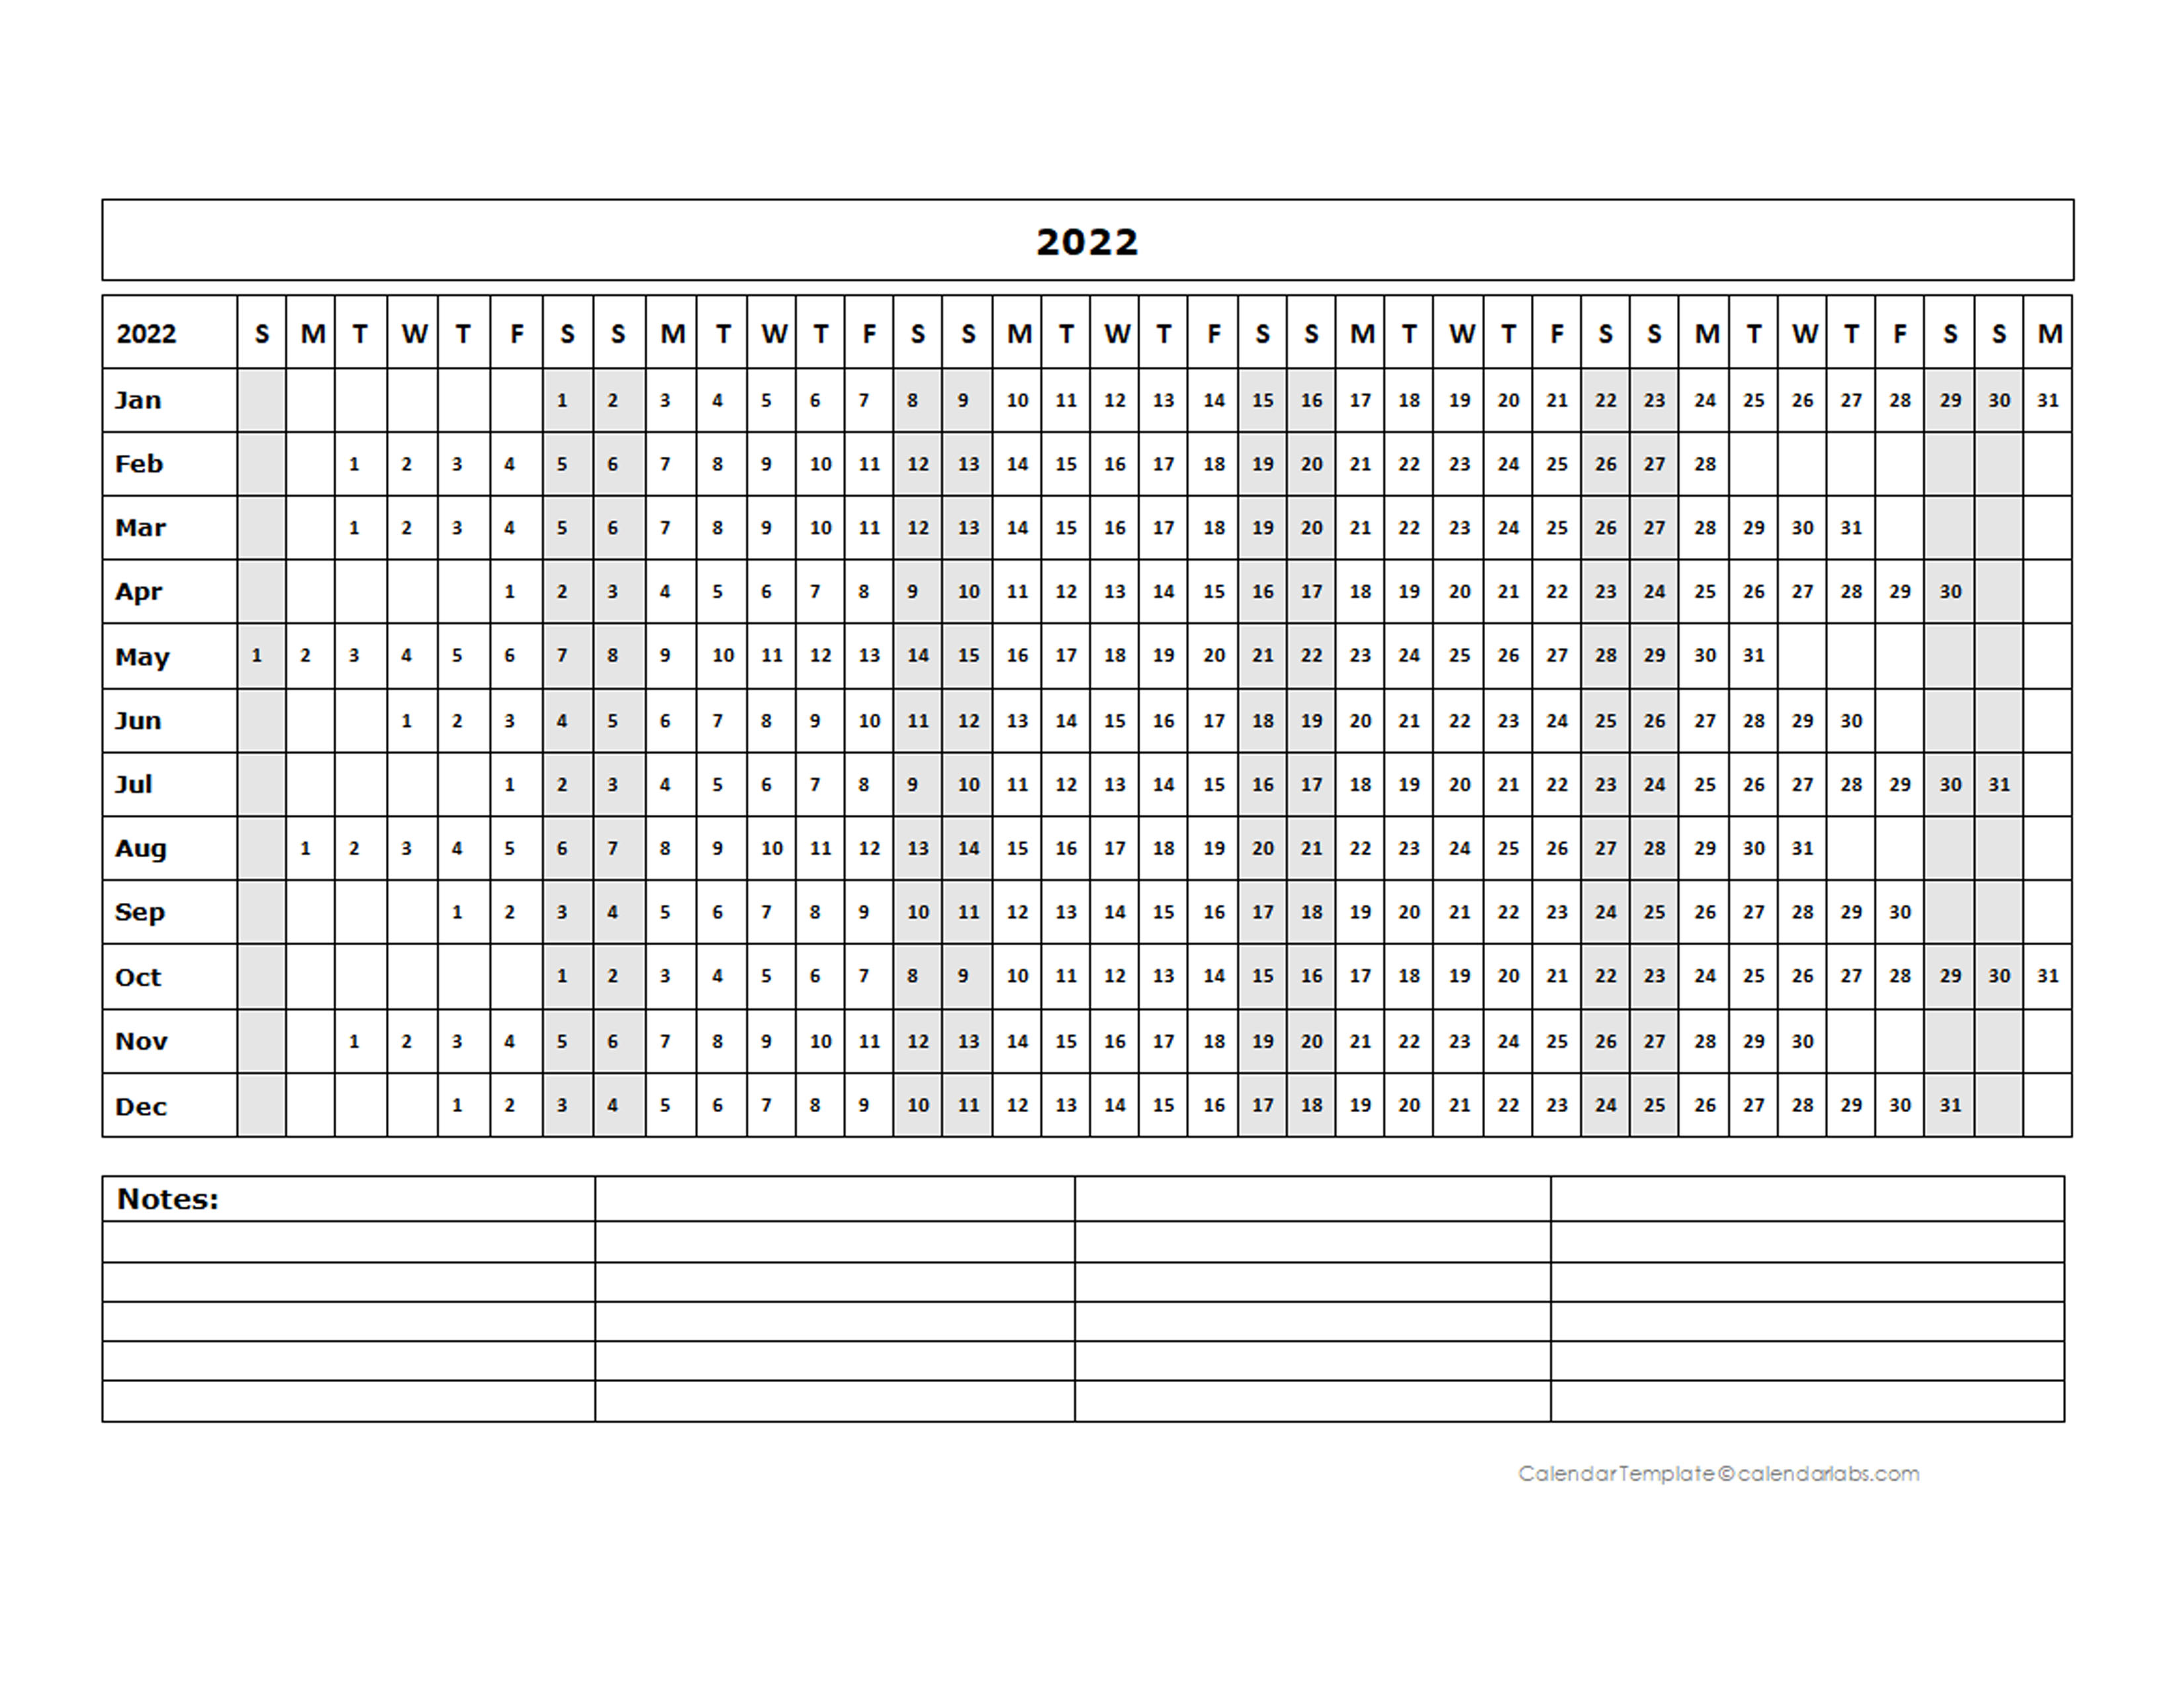 2022 Blank Landscape Yearly Calendar Template - Free ...